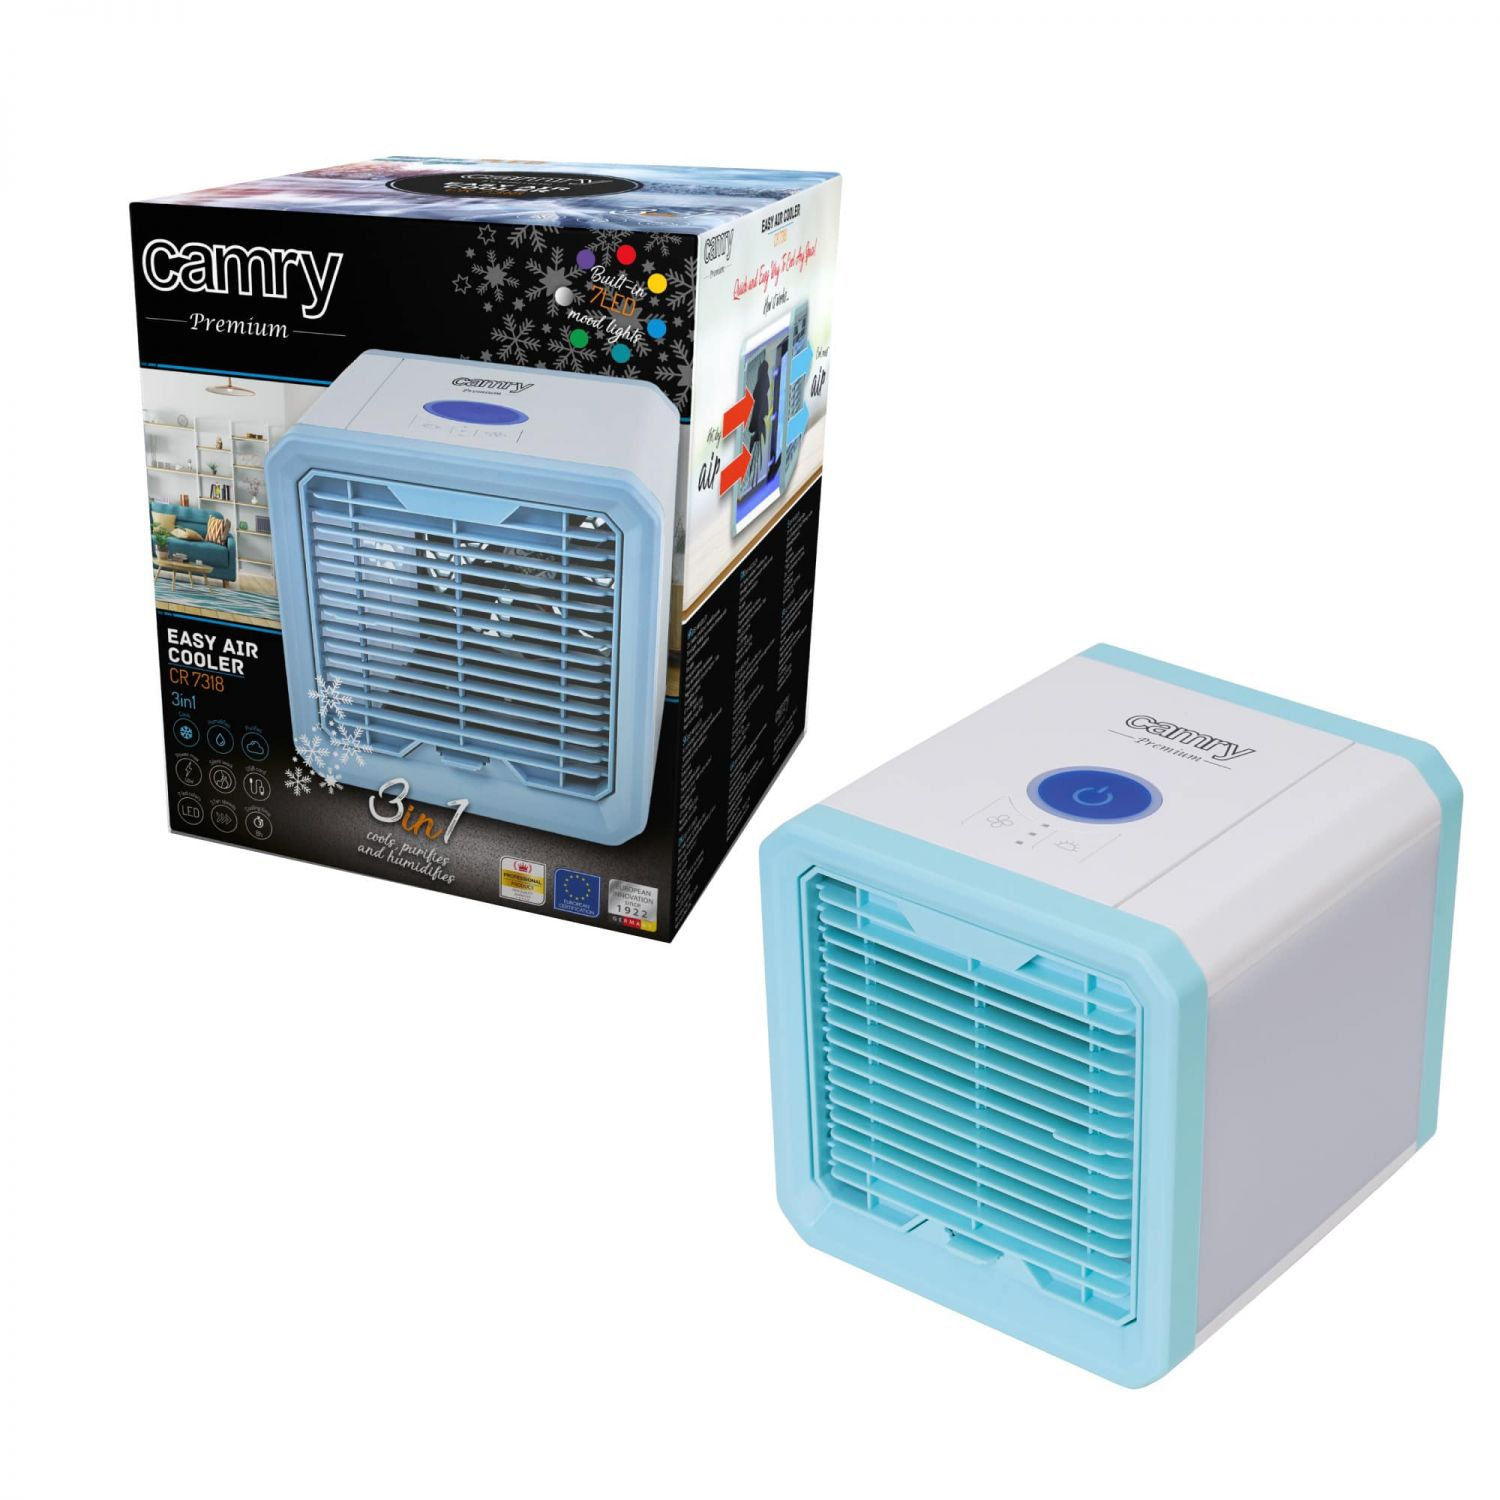 Camry CR 7318 Klimator Easy Air Cooler